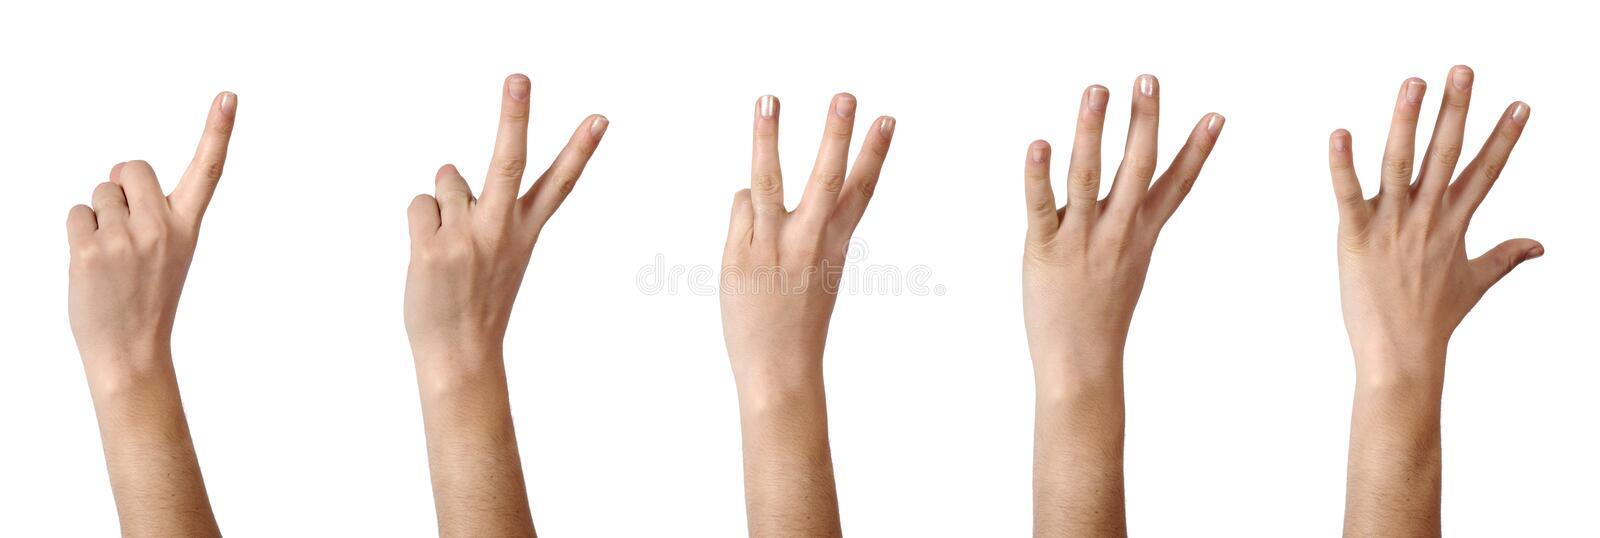 Hands, counting 1 to 5 royalty free stock photo